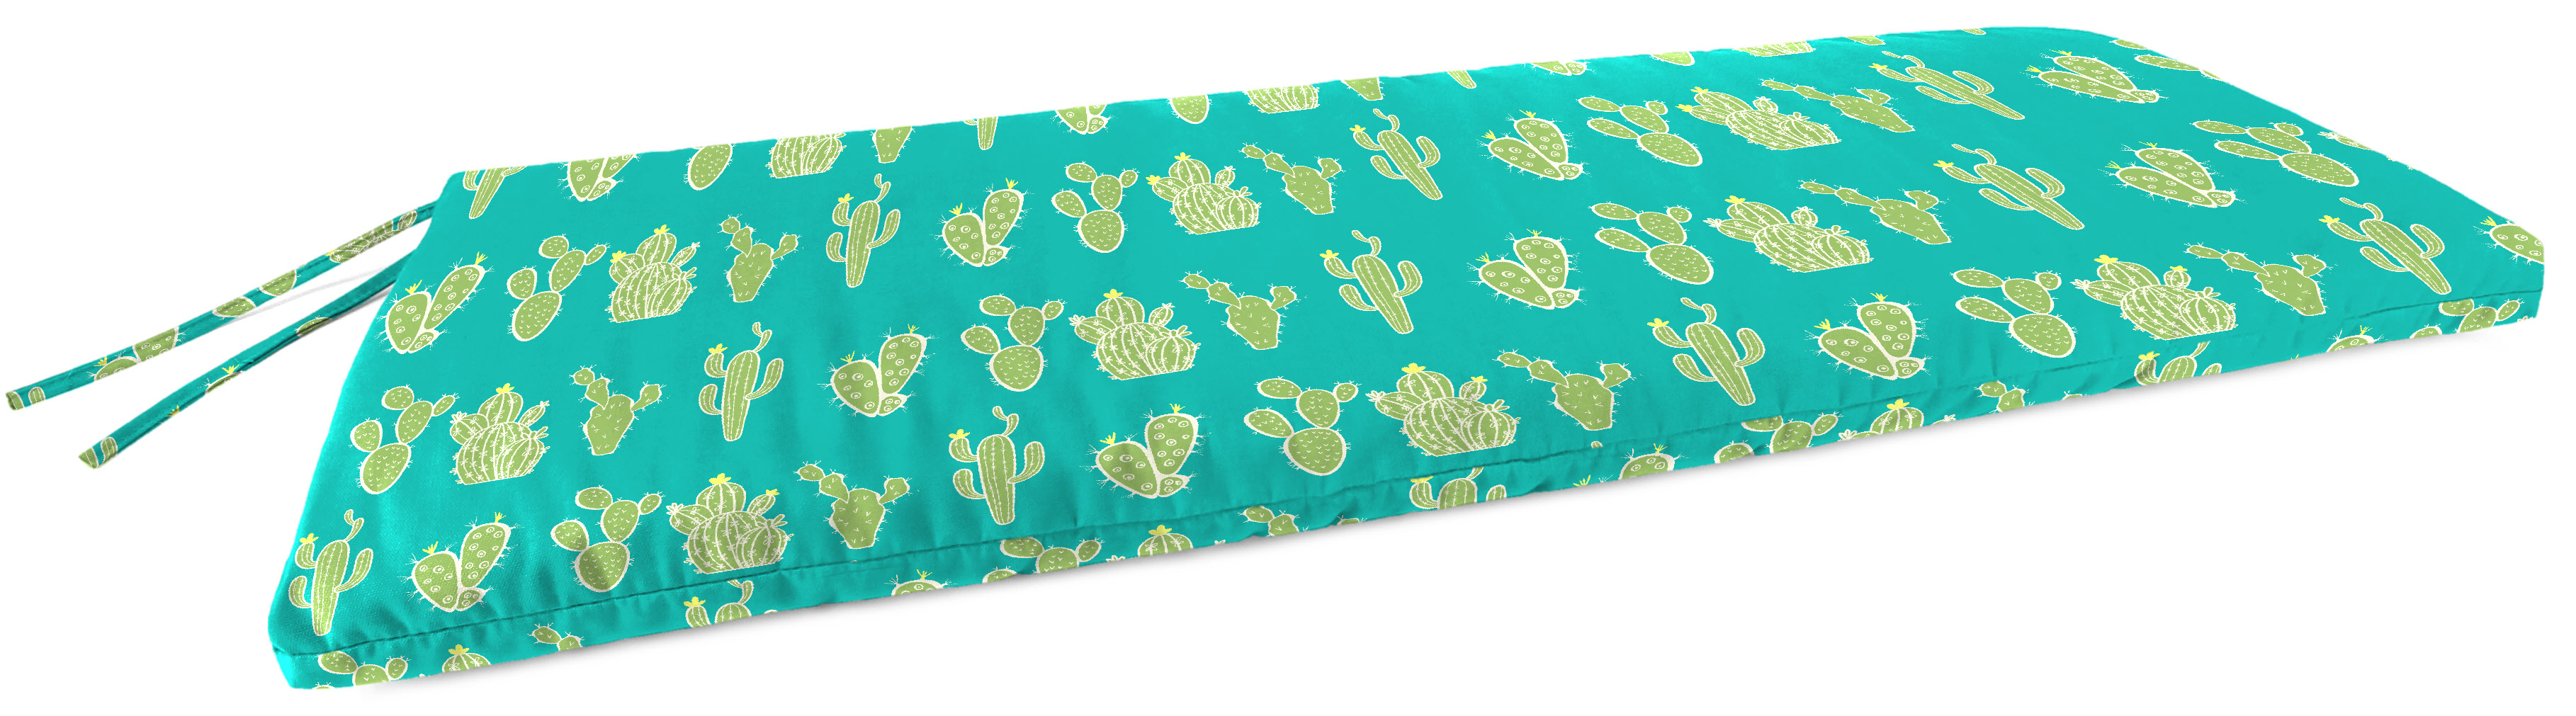 Genial Mainstays Cactus Outdoor Patio Bench Cushion